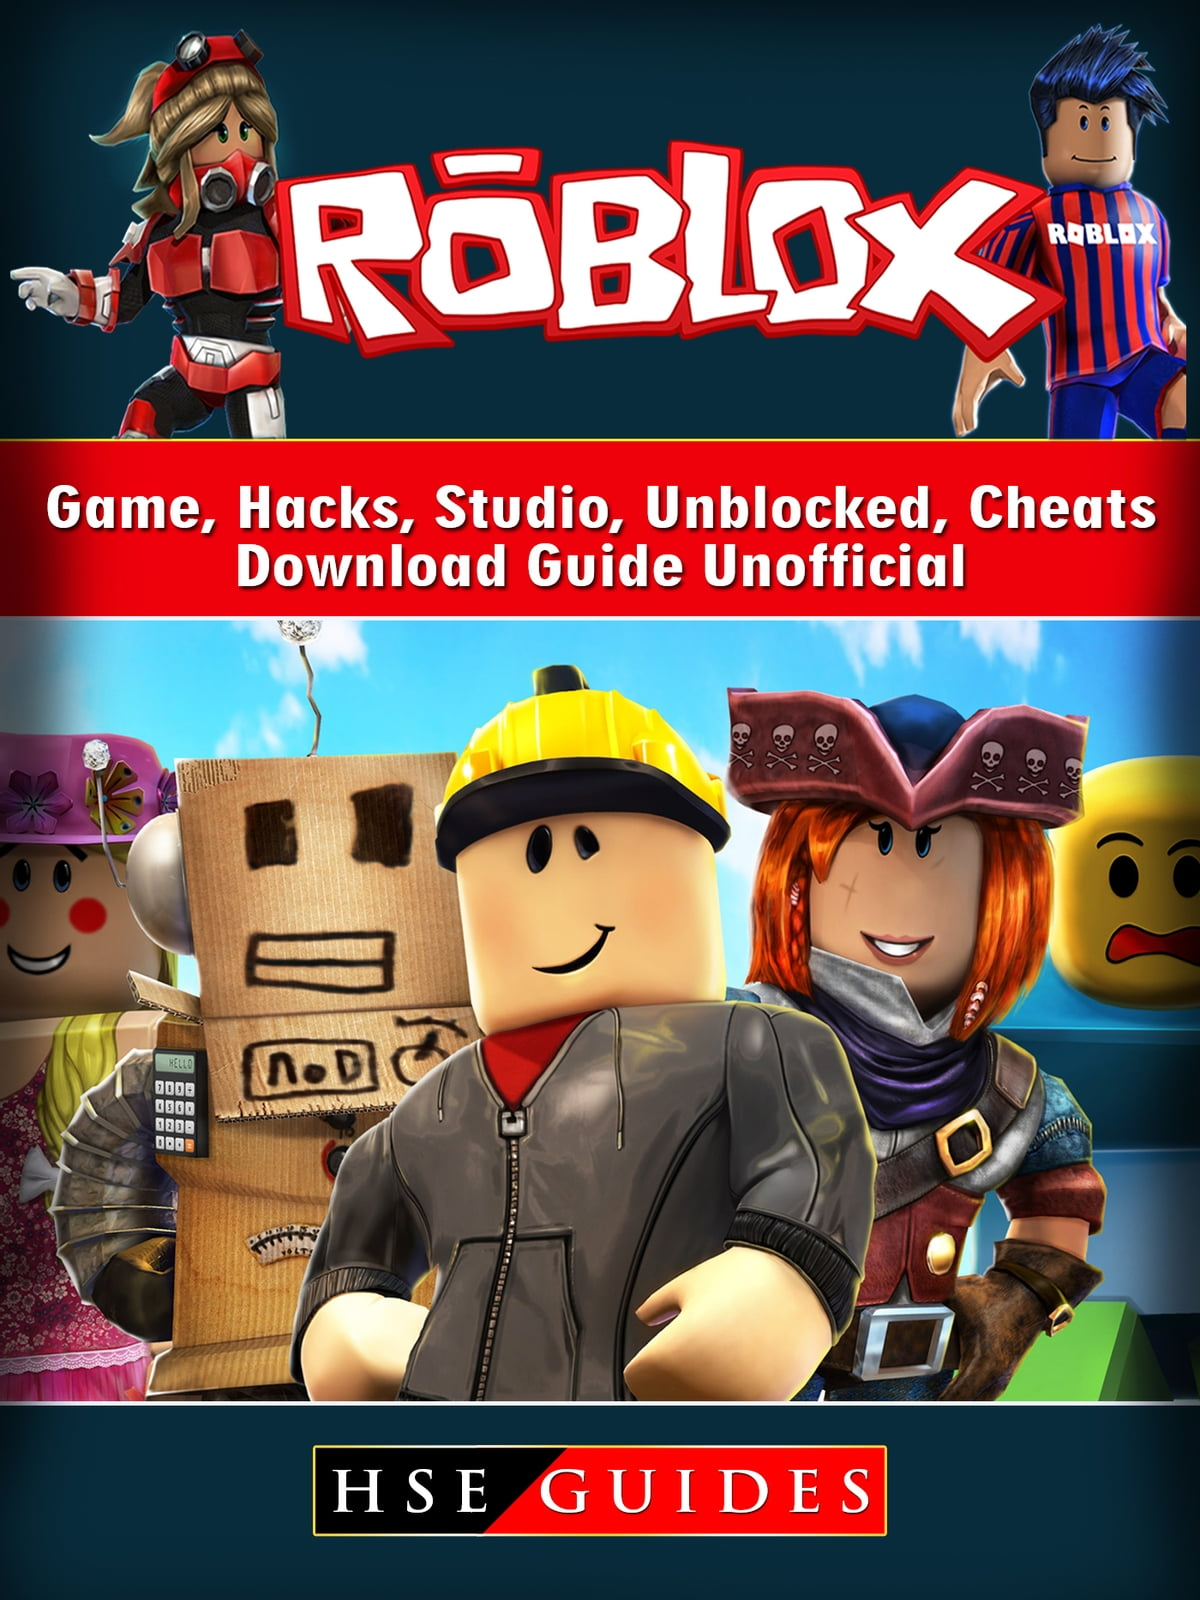 Personal Servers Roblox 1 0 Apk Download Android Simulation Games Roblox Game Hacks Studio Unblocked Cheats Download Guide Unofficial Ebook By Hse Guides 9781387442119 Rakuten Kobo Greece